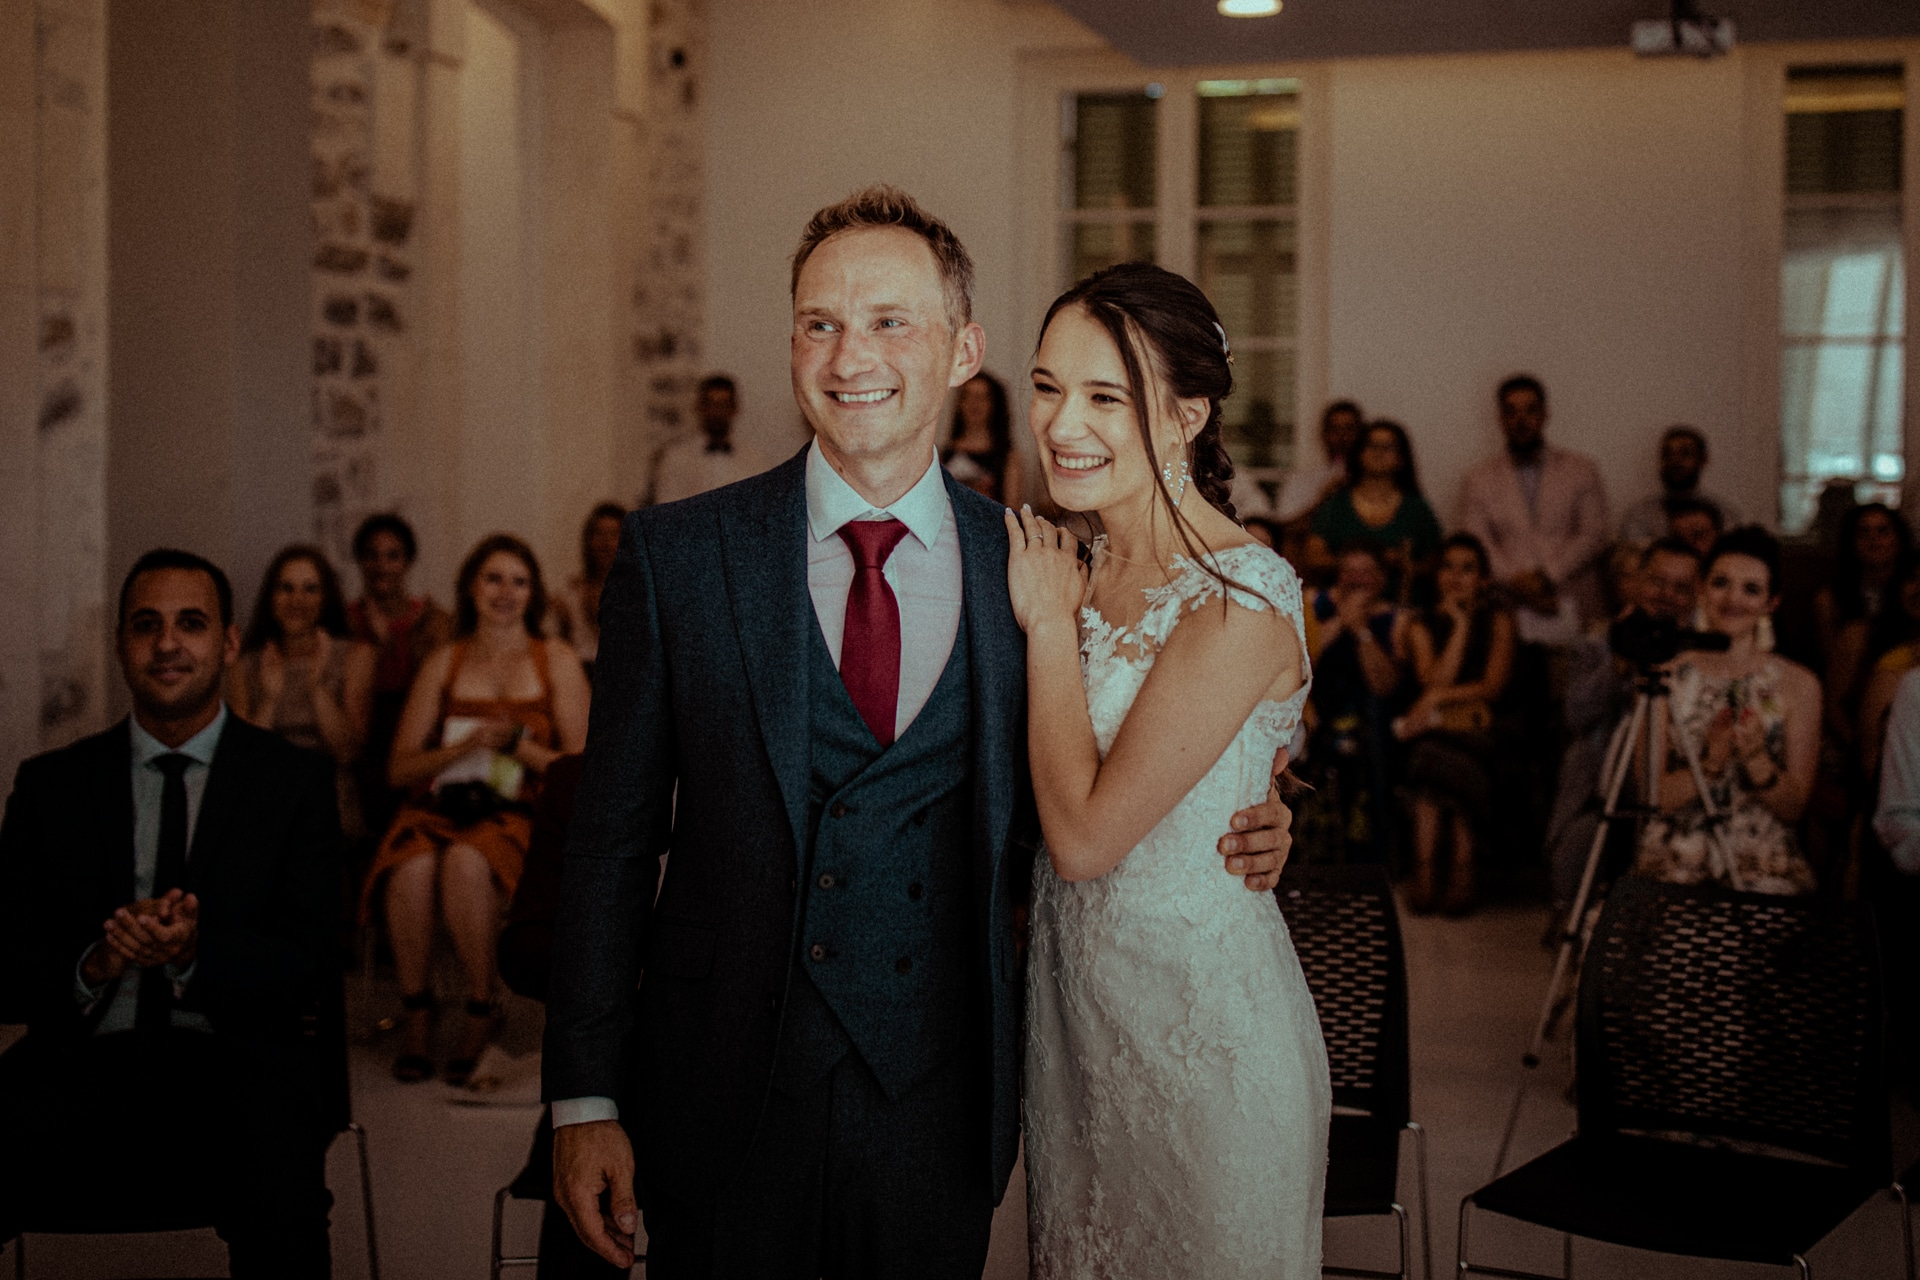 newlyweds happy during the civil part of their wedding